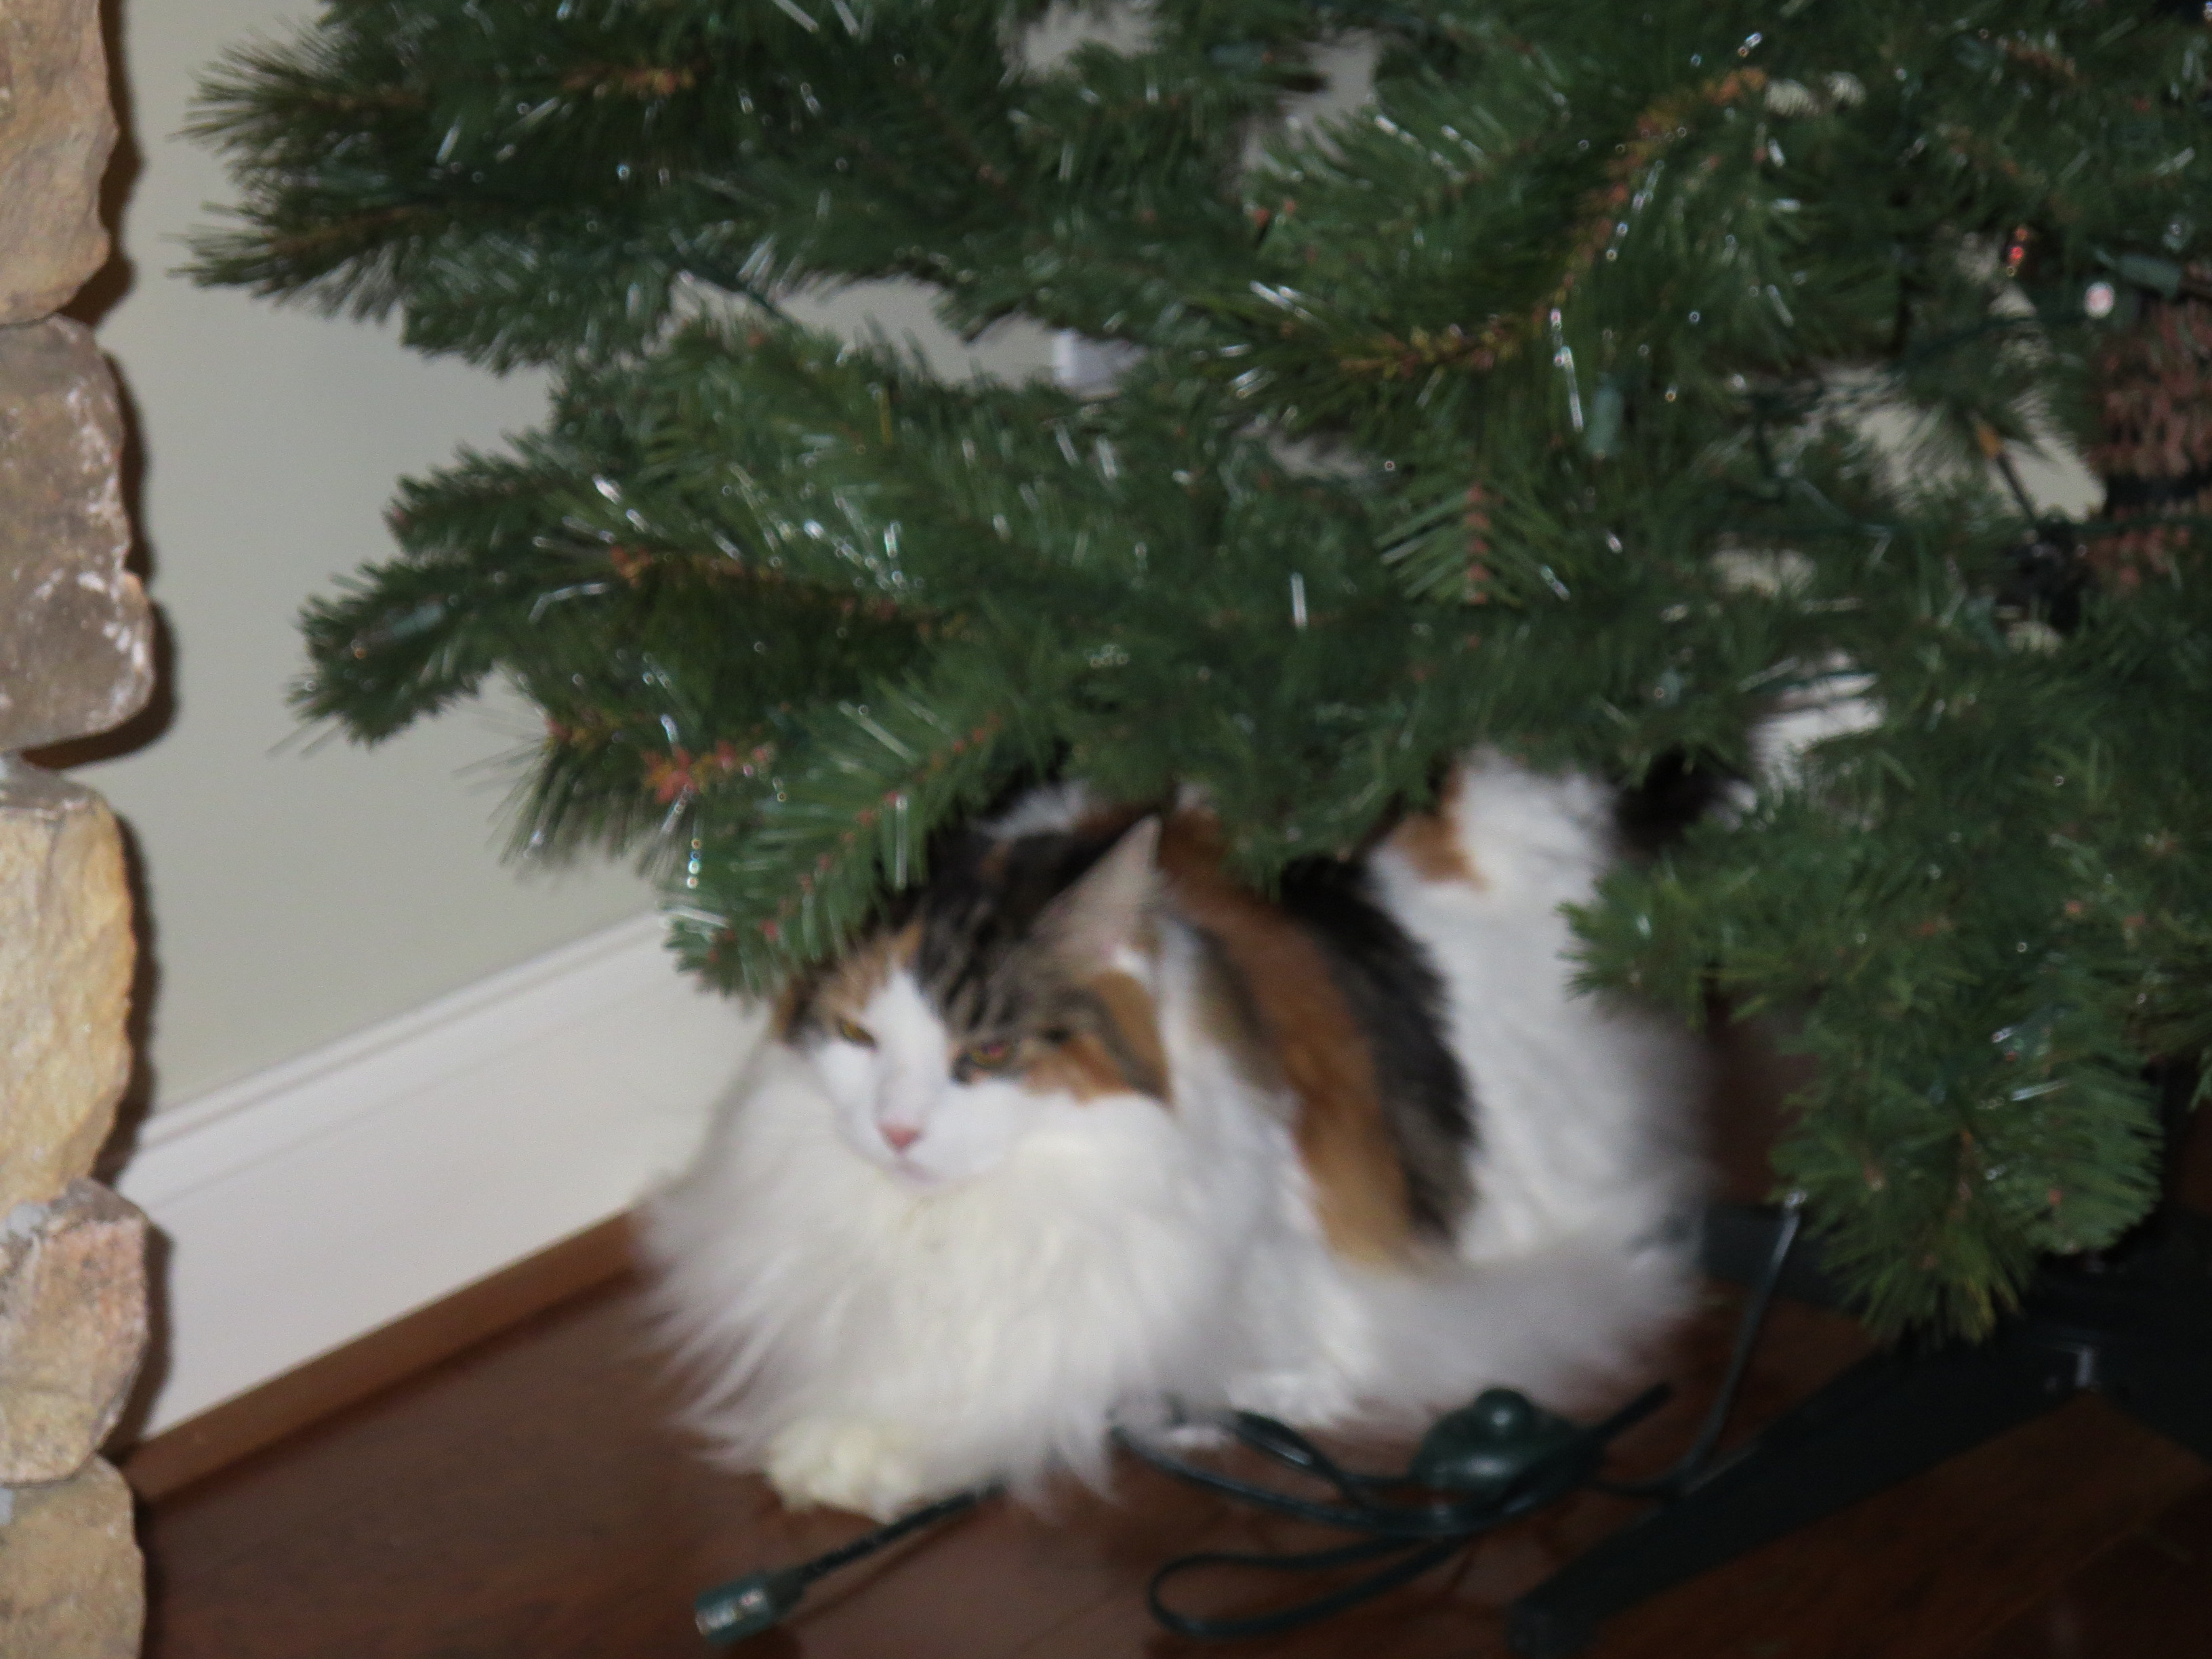 christmas-2013-ruby-waiting-for-us-to-decorate-the-tree-2014_02_18-18_15_37-utc